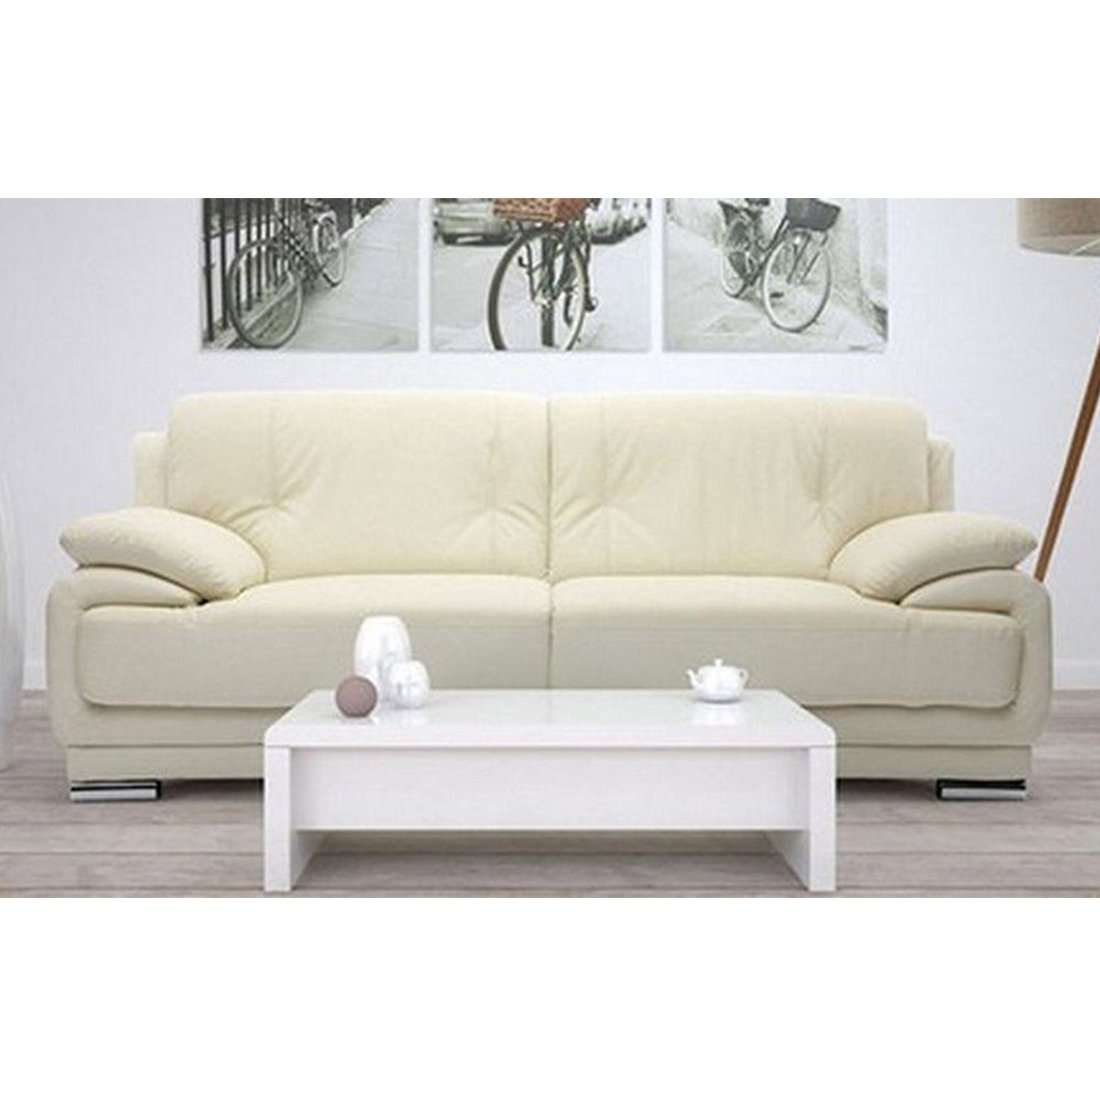 100 Buy Sofa In Bangalore Buy Sofa Sets Online At Best Prices In India Buy Sofa Sets